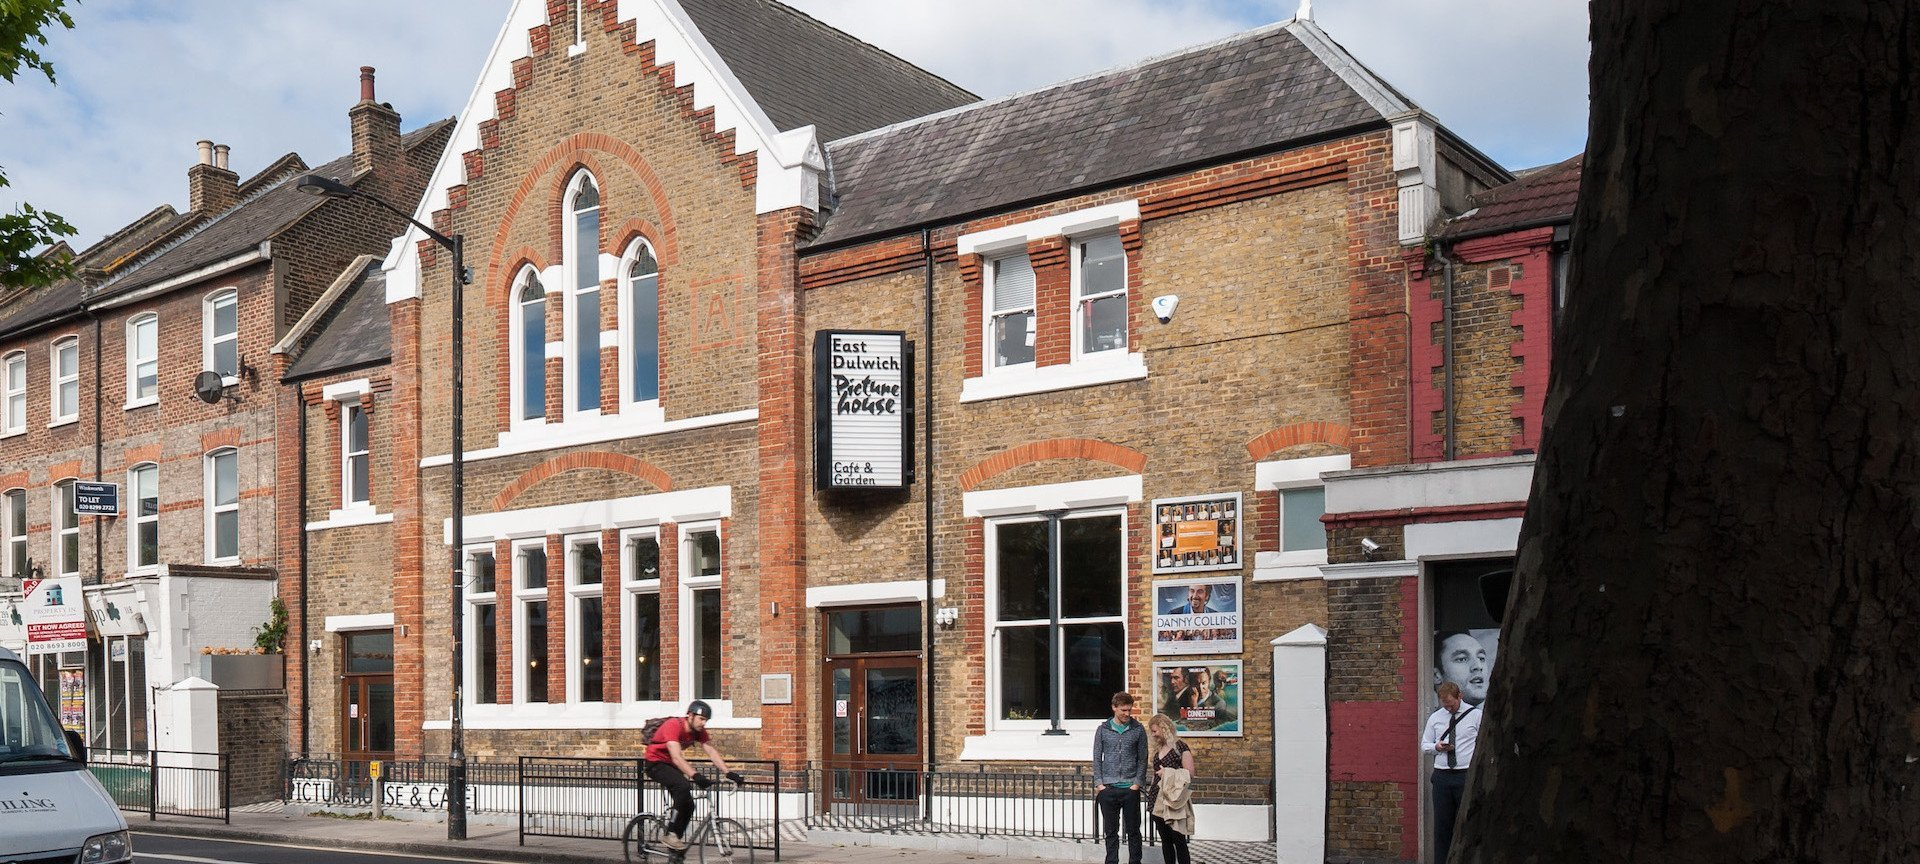 Welcome To<br>East Dulwich Picturehouse and Café